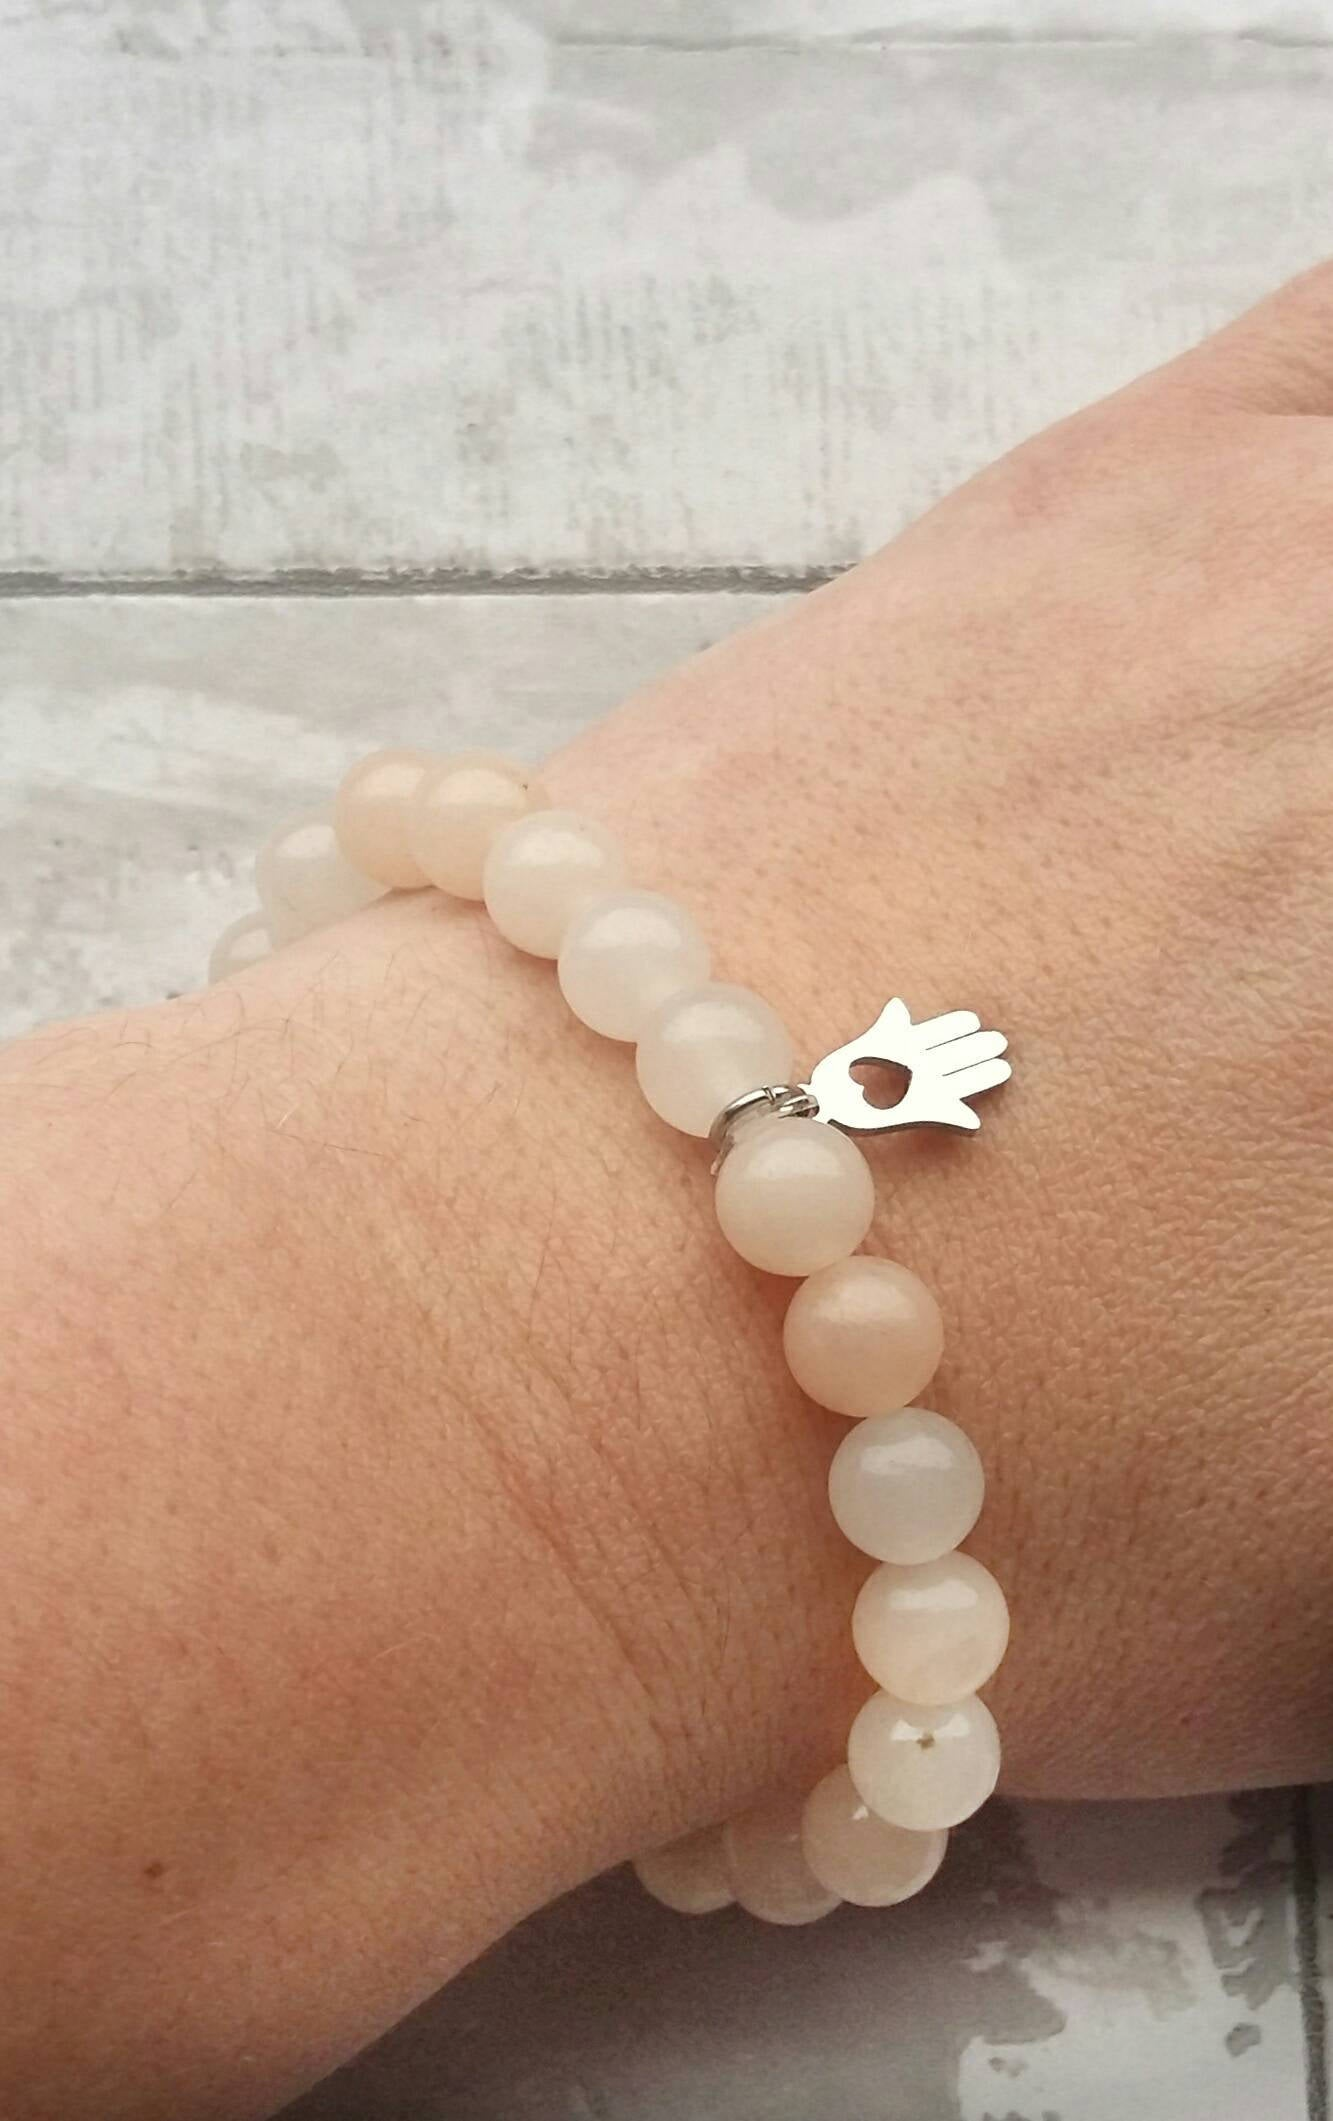 Self love bracelet- crystal healing-depression gift- self empowerment- pink aventurine- self awareness- hand in heart